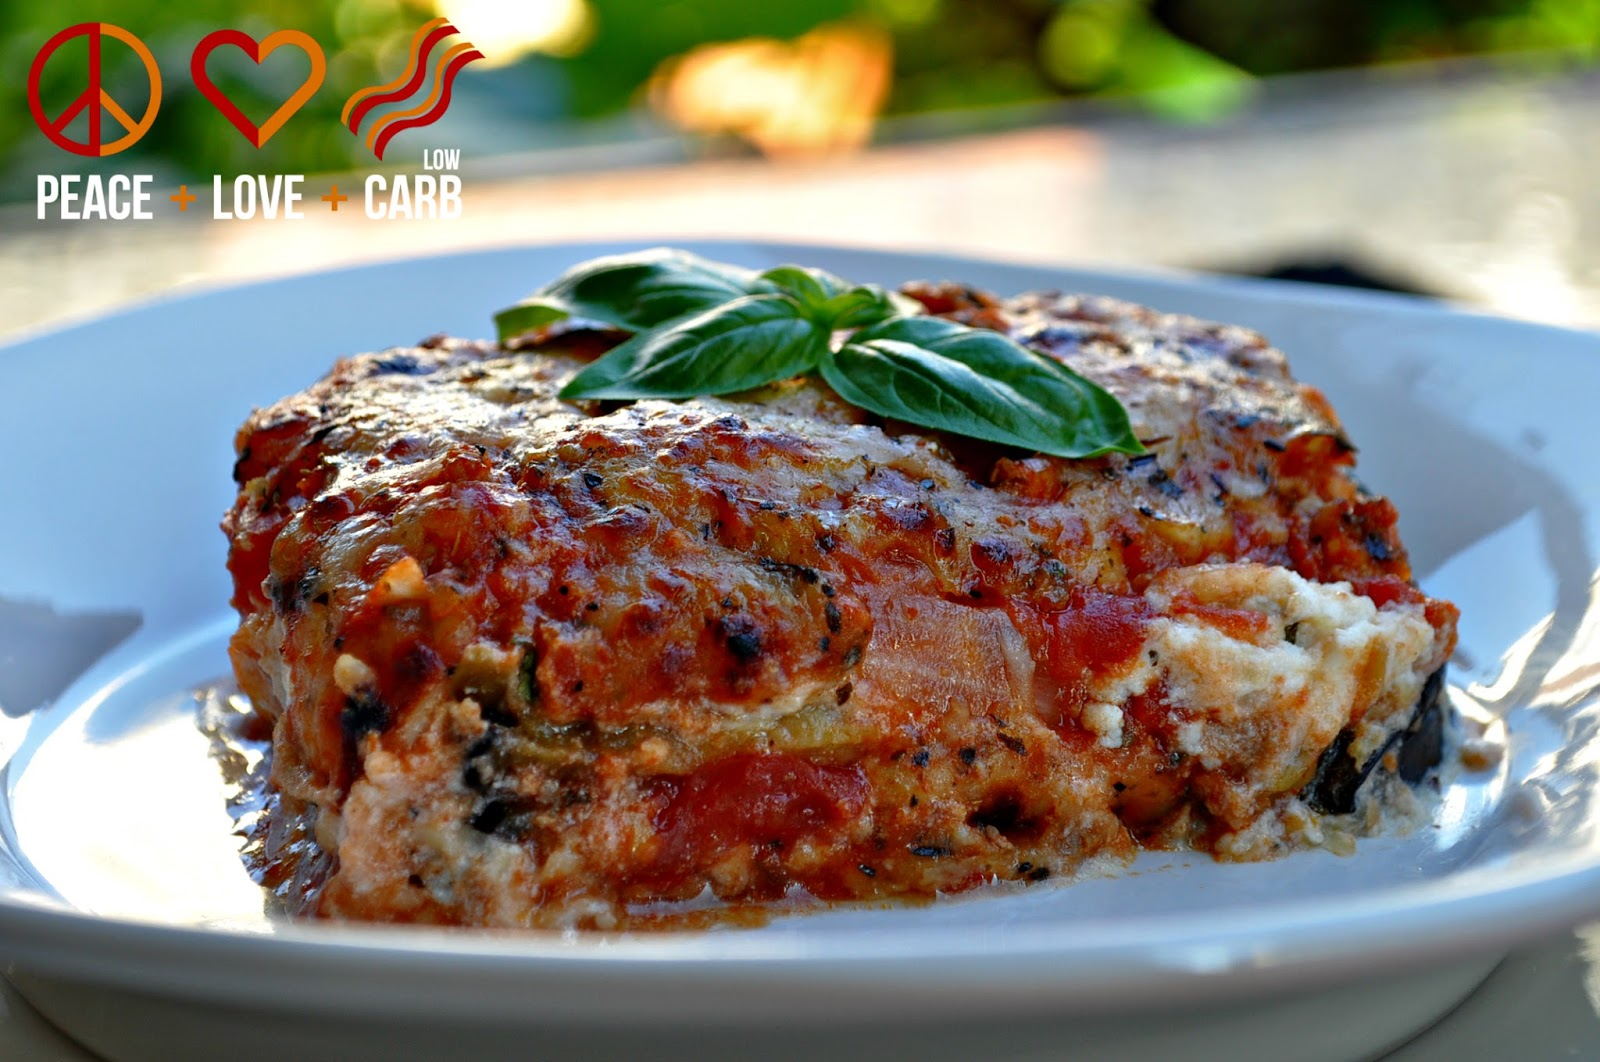 Eggplant Lasagna with Meat Sauce